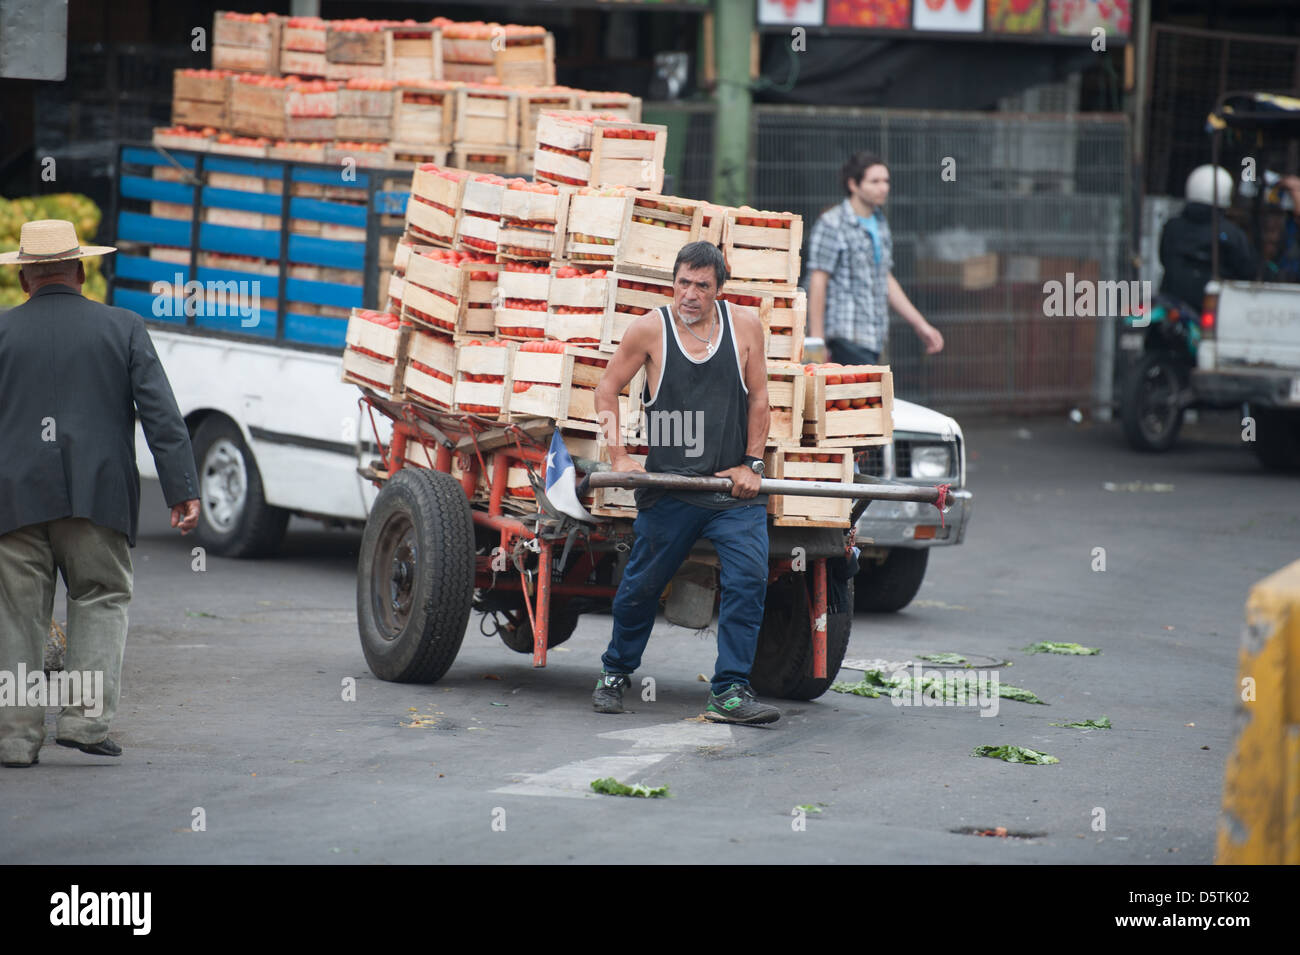 Worker moving vegetables on a truck at Lo Valledor central wholesale produce market in Santiago, Chile - Stock Image